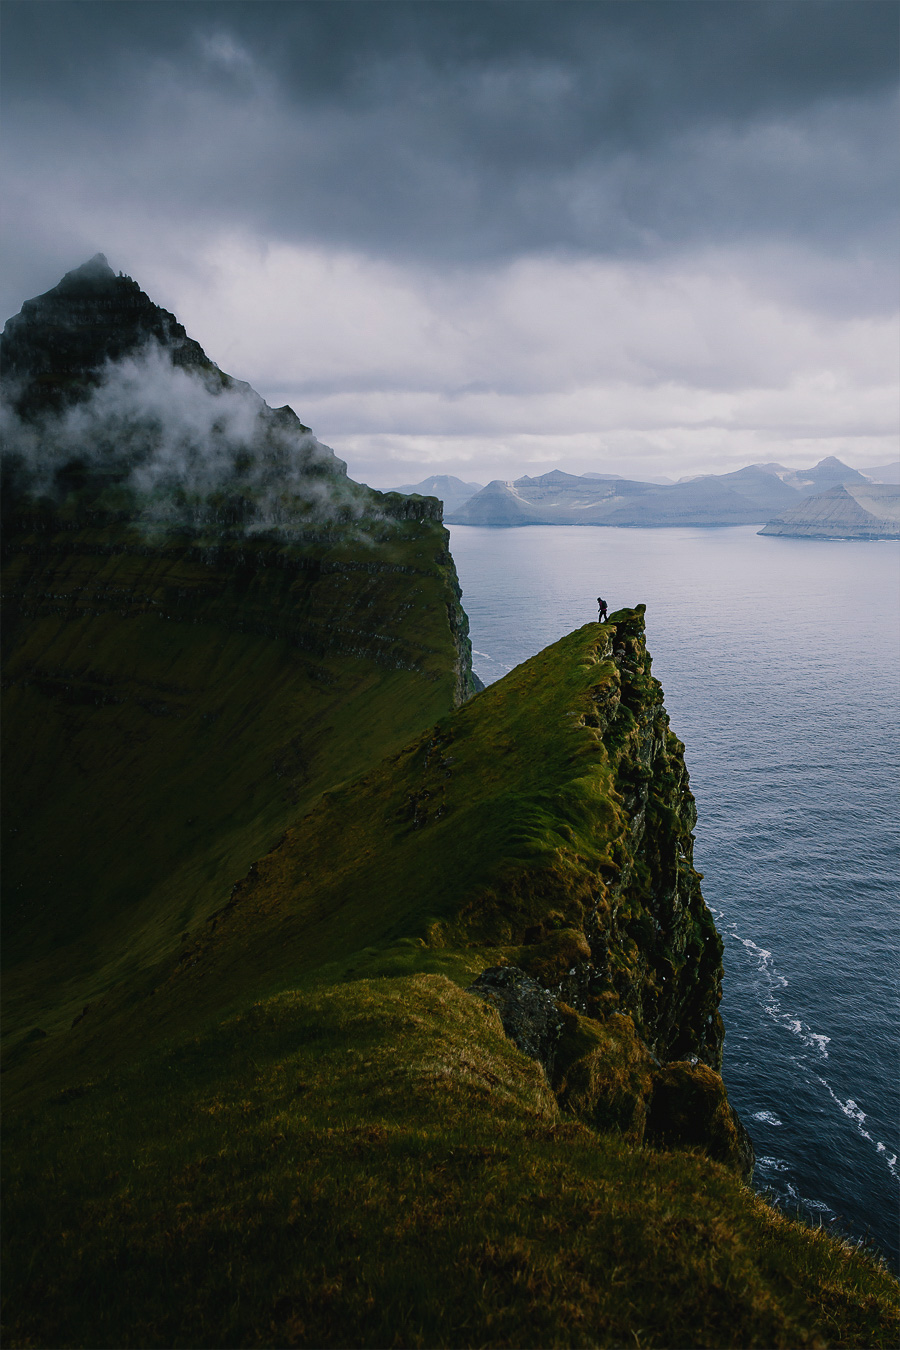 Person hiking the mountains of Faroe Islands